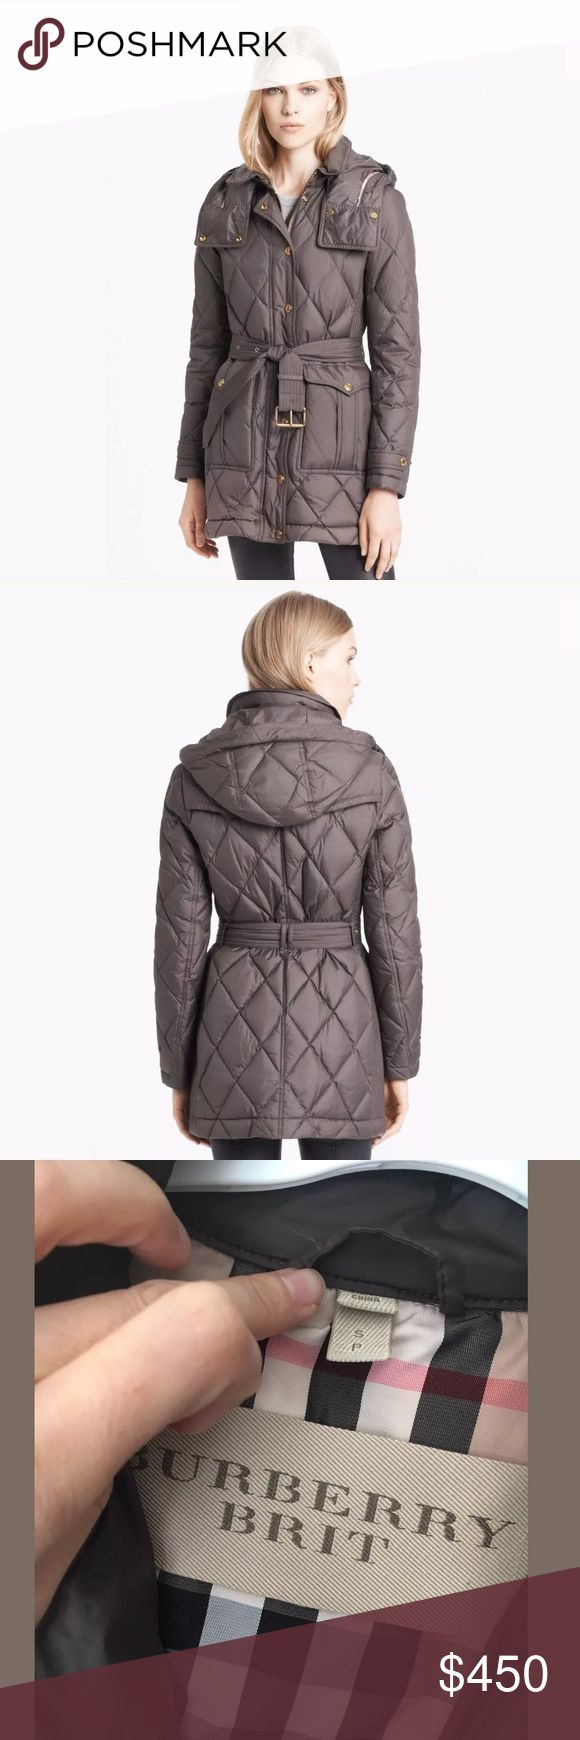 Burberry Brit Greysby Quilted Down Jacket SMALL VGUC, still very puffy. Scratches on metal hardware. Well-made down jacket in a very unique (grey/brown) colour. Purchased on eBay, but too small for me. Worn a couple of times and very warm for NYC weather. MSRP $850 Burberry Jackets & Coats